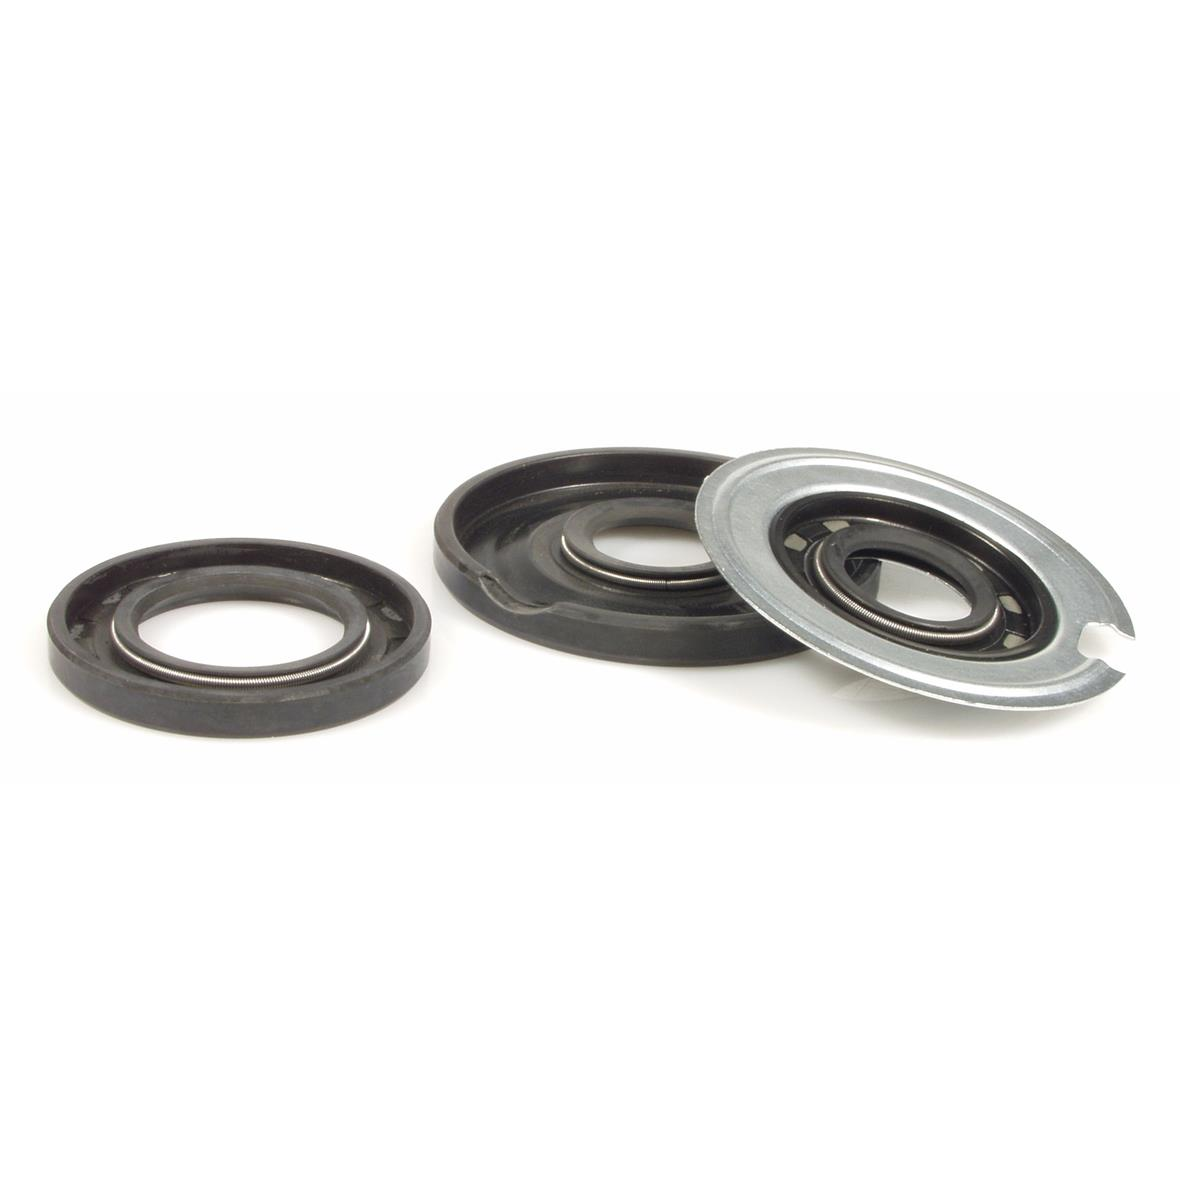 Product Image for 'Oil Seal Set engine CORTECO 20x62x6,5/ 20x40x6/ 27x47x6 mmTitle'